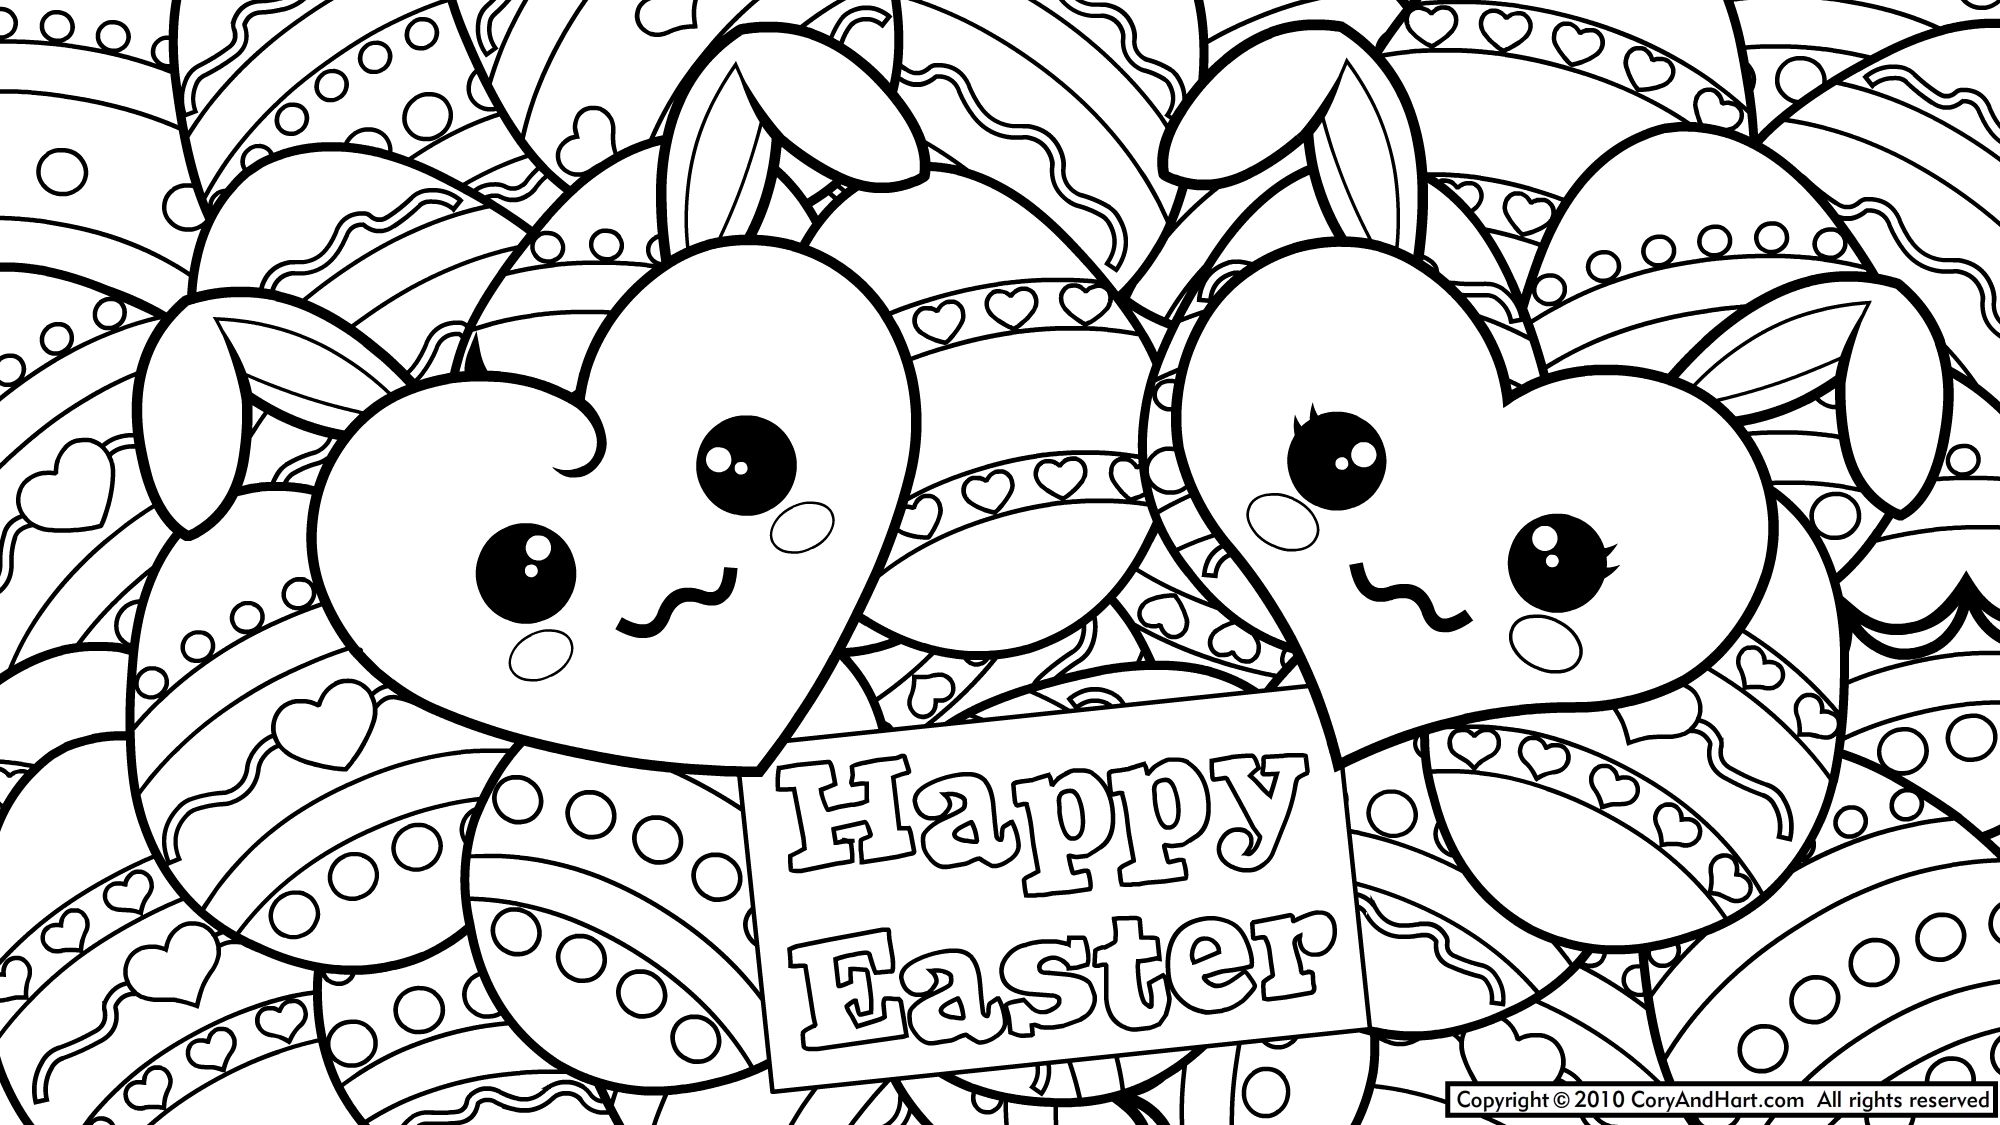 big coloring pages - High Quality Coloring Pages